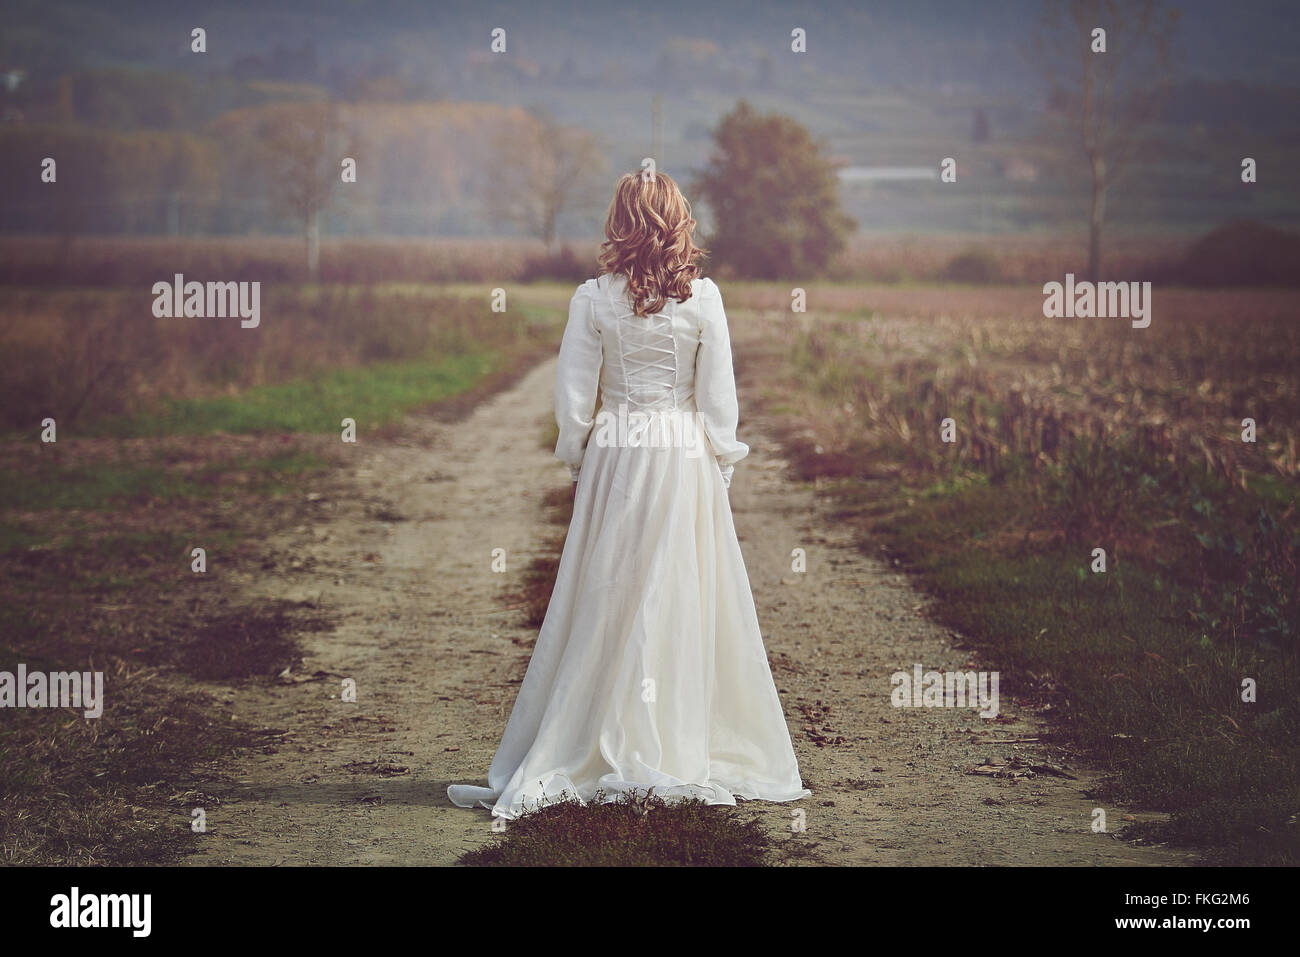 Bride with beautiful dress in country fields. Purity and innocence - Stock Image